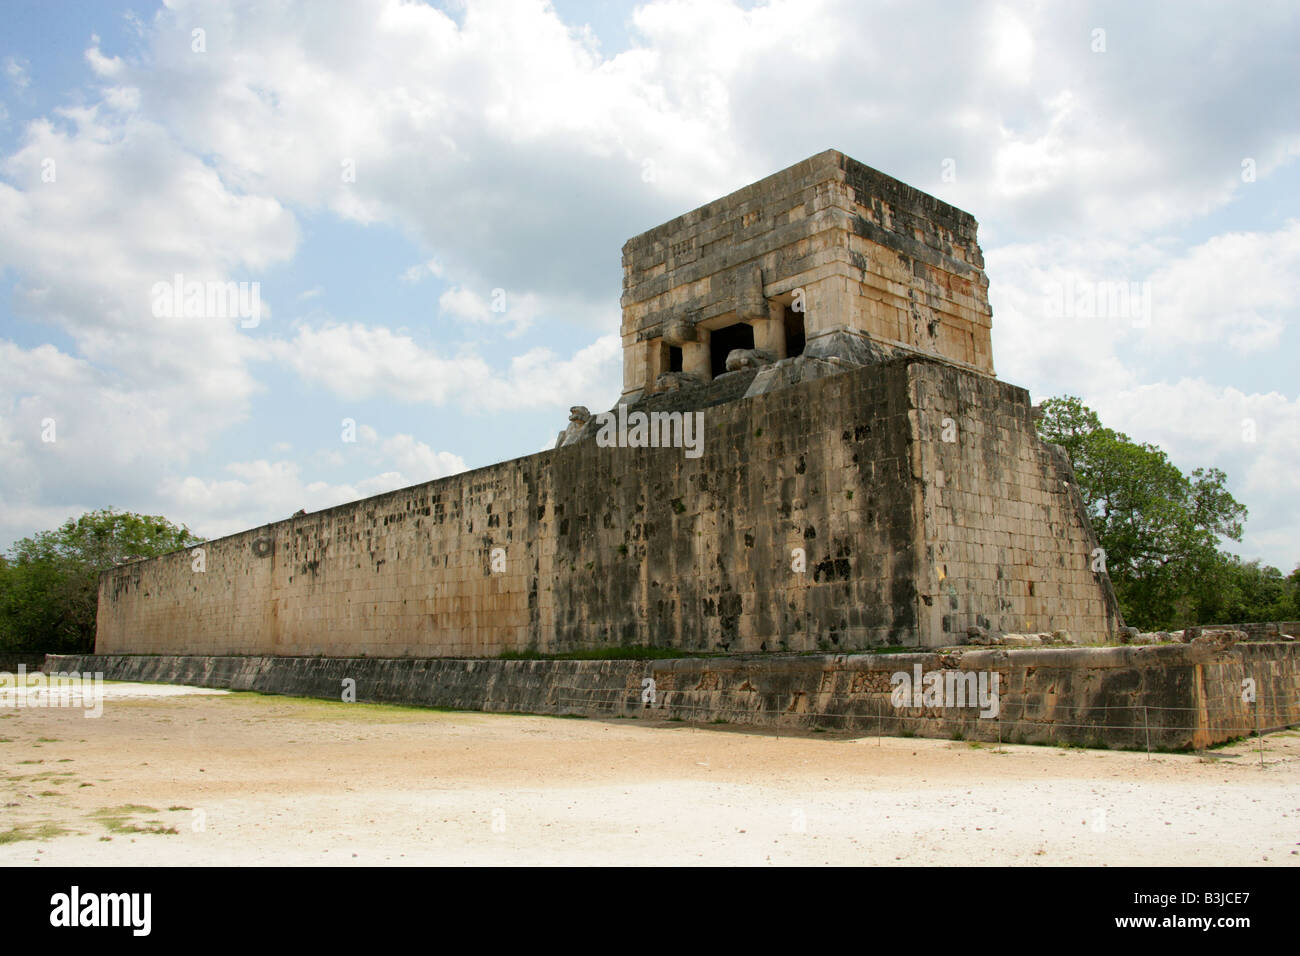 Great Ballcourt, Juego Pelota, Chichen Itza, Yucatan Peninsular, Mexico - Stock Image